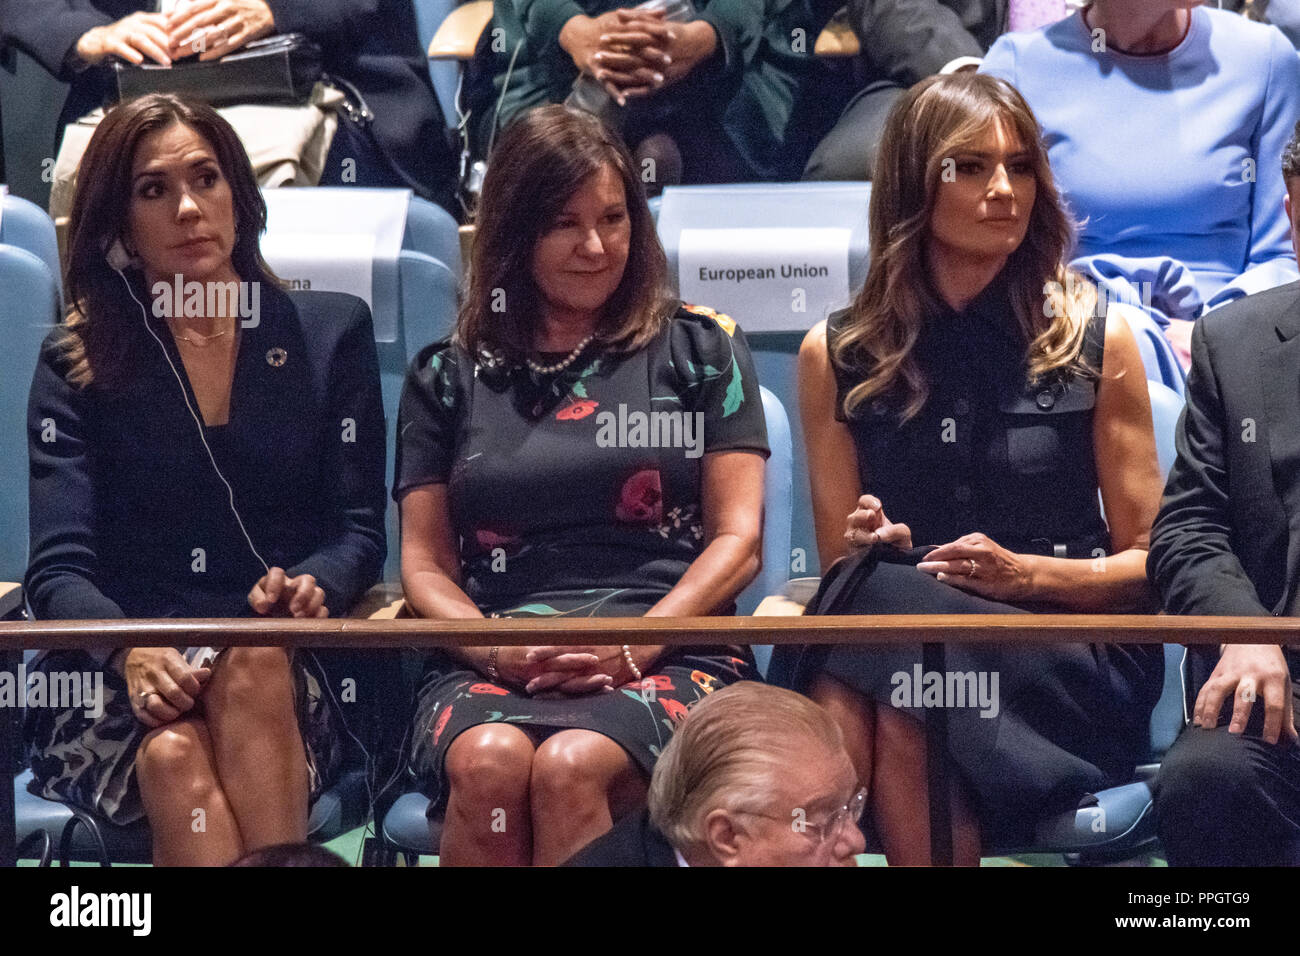 New York, USA, 25 September 2018. USA's First Lady Melania Trump (R) and Karen Pence (C), wife of U.S. Vice President Mike Pence waits in a side gallery along with wives of other delegates before her husband US President Donald Trump addresses the opening session of the 73rd United Nations General Assembly. Photo by Enrique Shore Credit: Enrique Shore/Alamy Live News Stock Photo